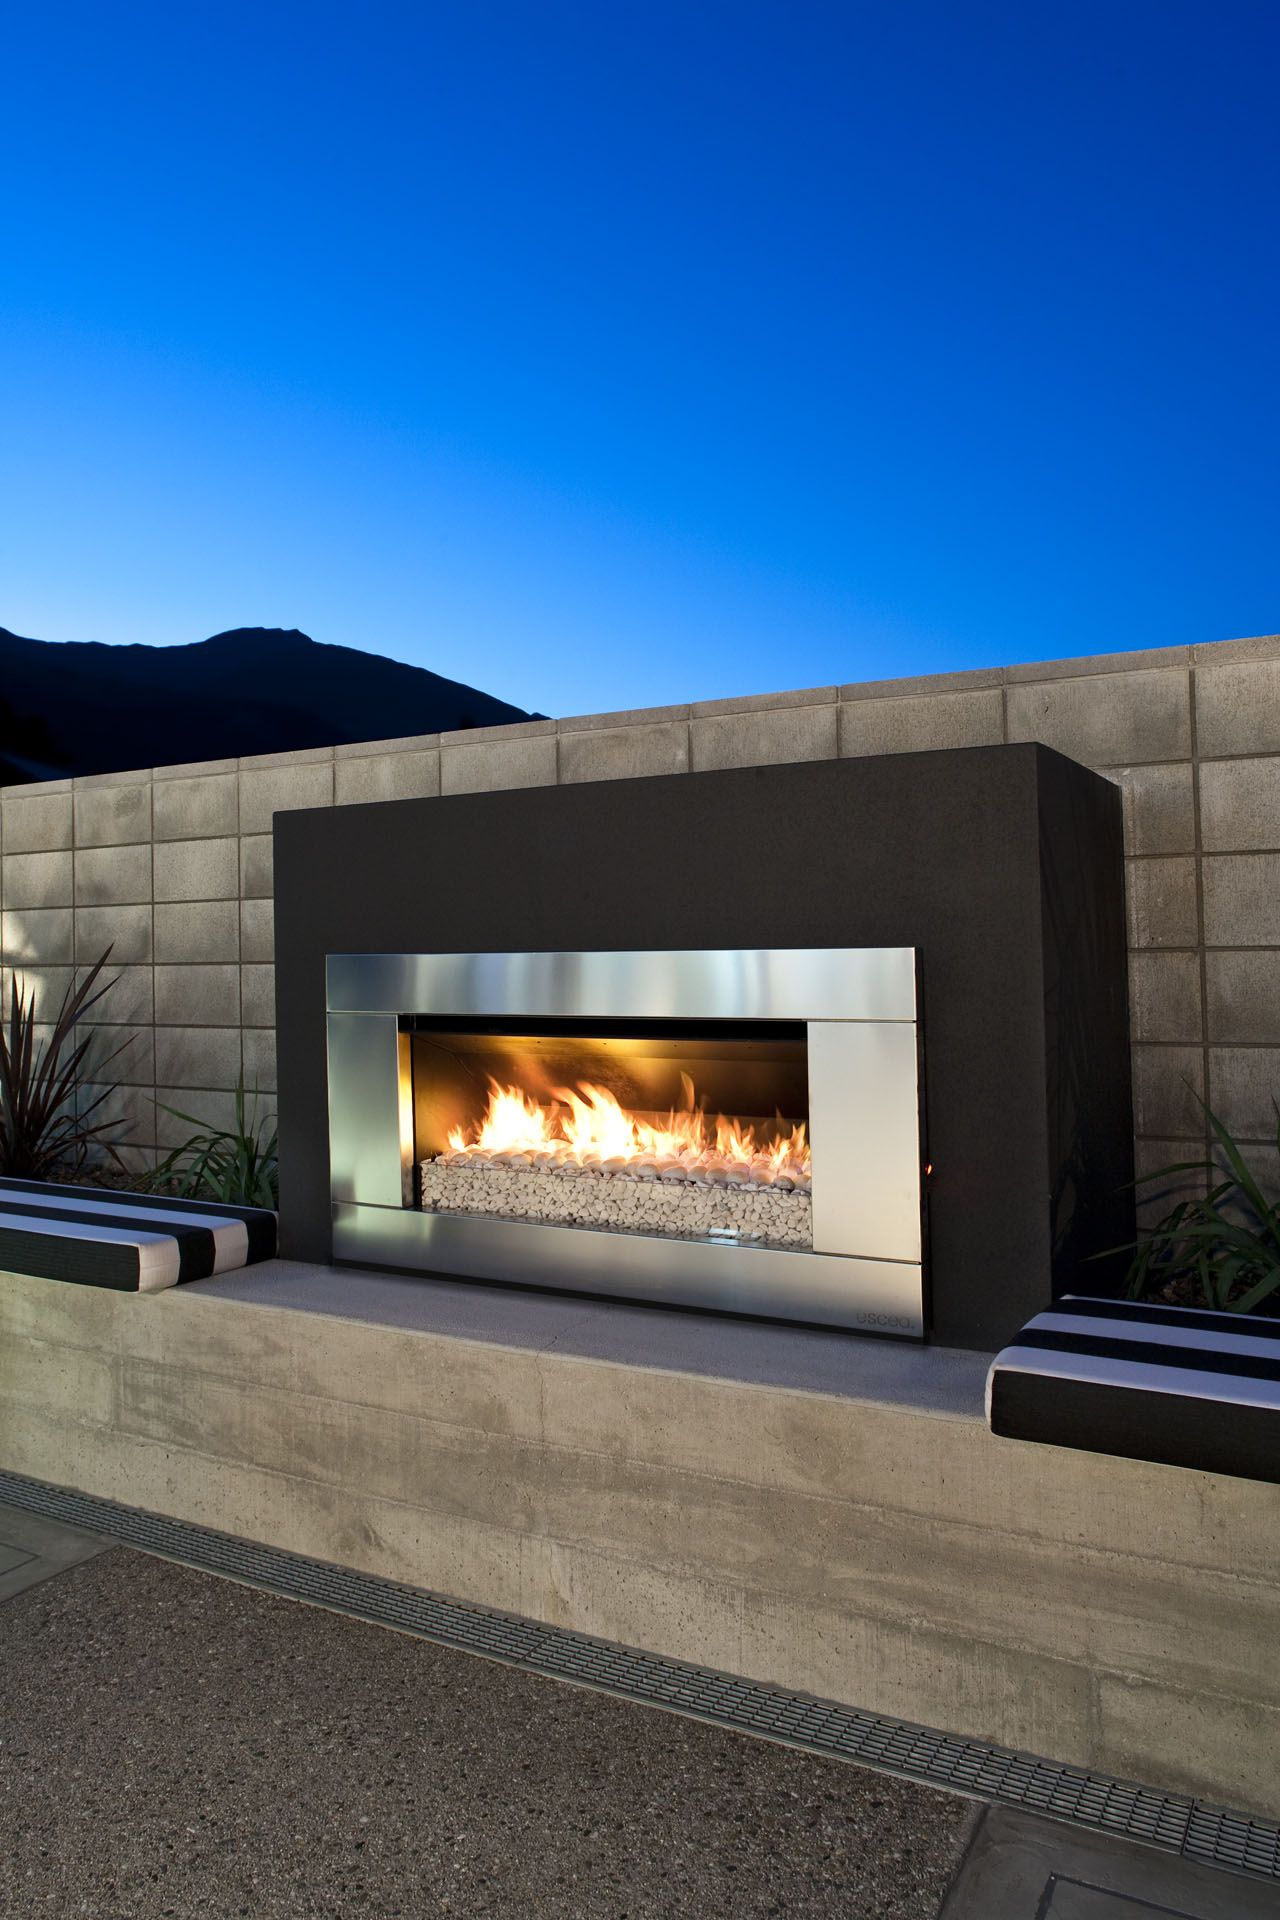 simple outdoor fireplace to compliment the industrial garden